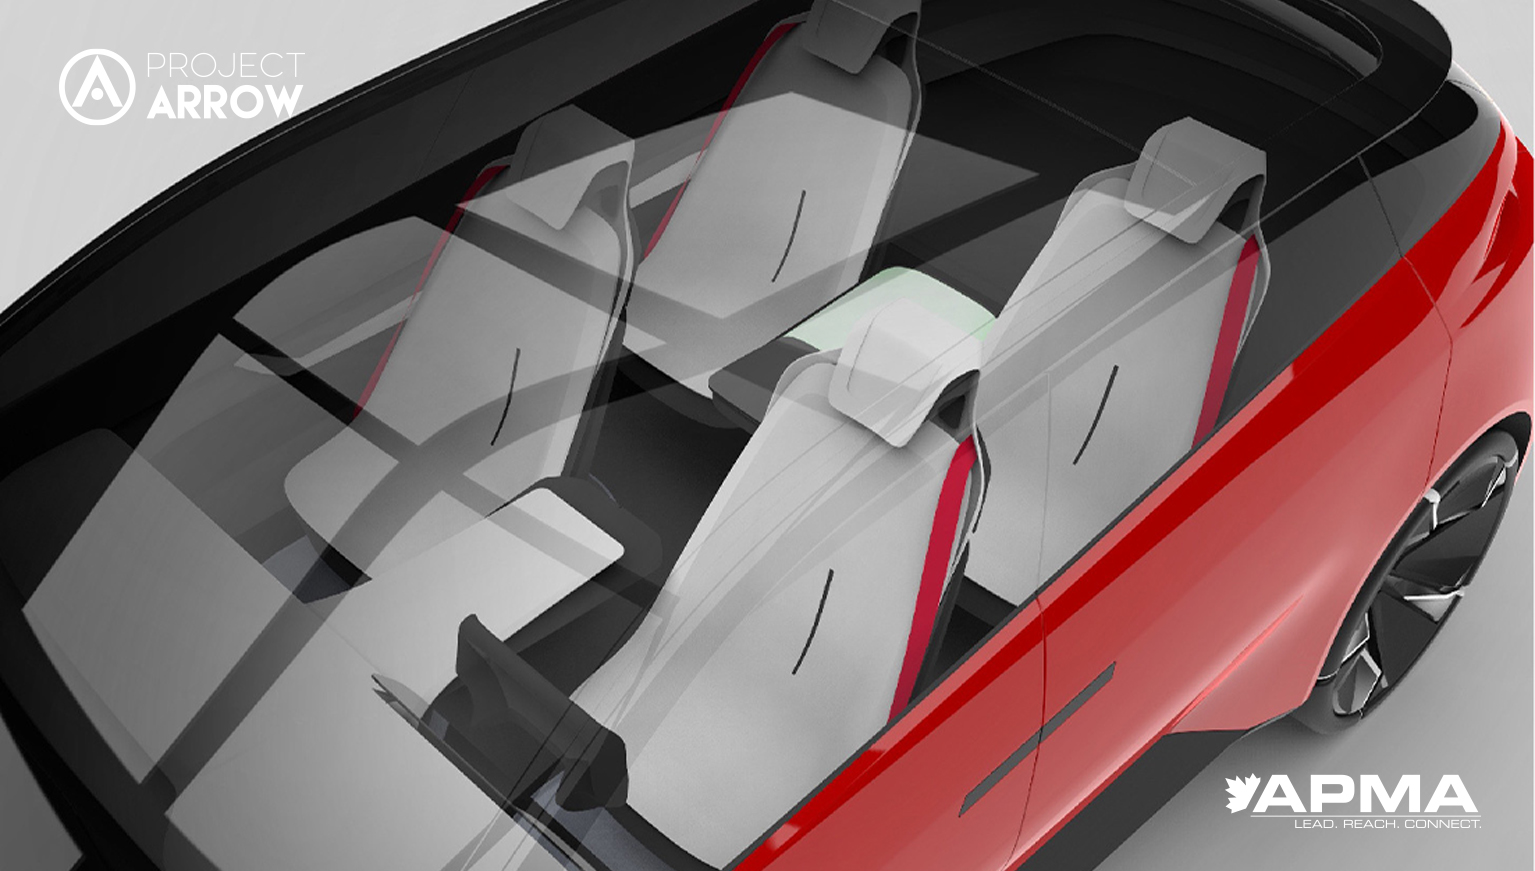 internal view of Project Arrow concept car